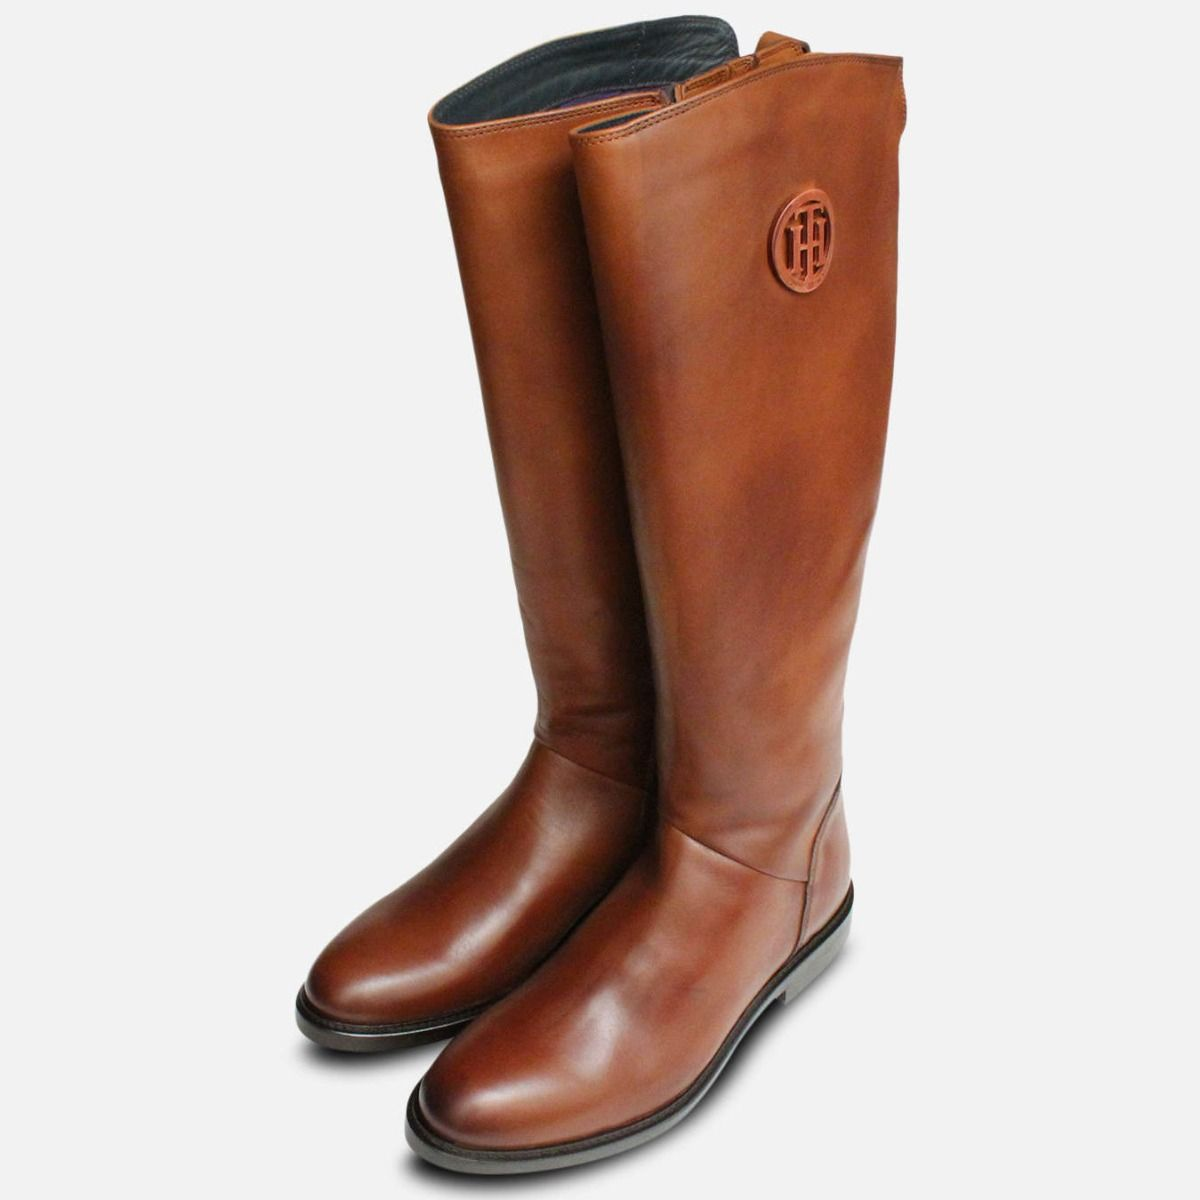 online store e9136 6d191 Holly by Tommy Hilfiger Tall Ladies Cognac Boots